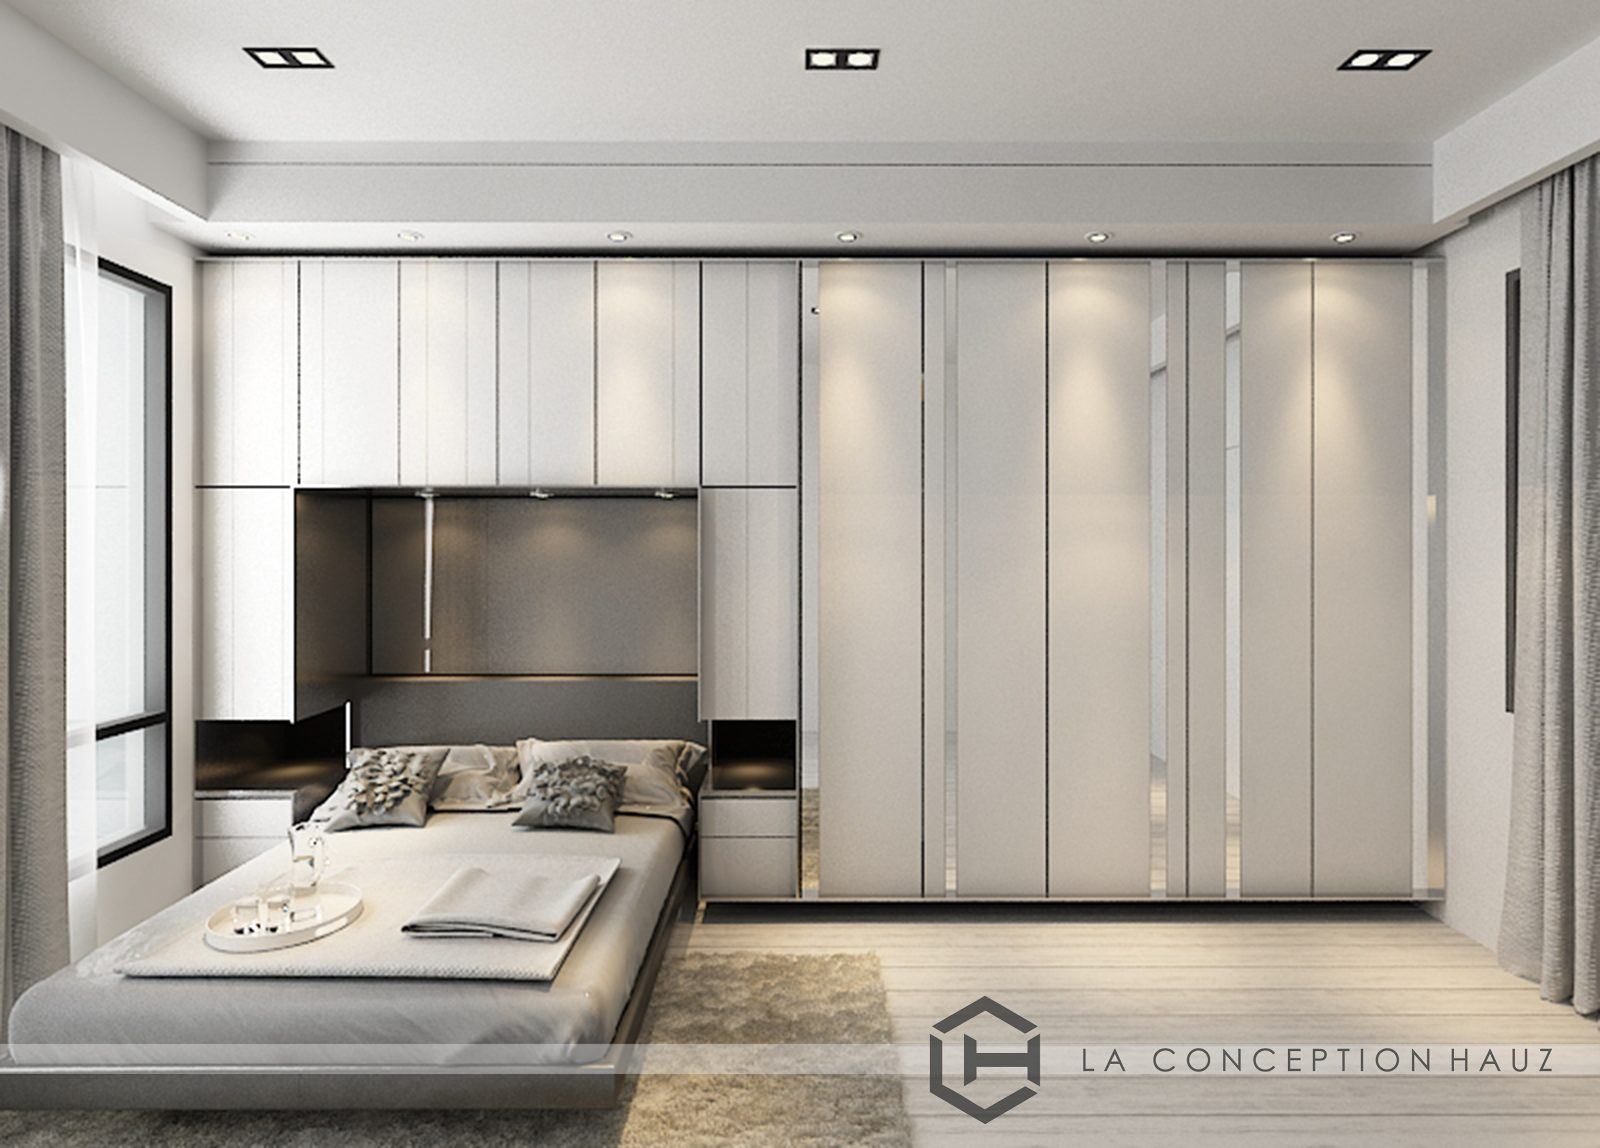 Wall-to-wall wardrobe for this condominium in Rimba Residence, Puchong